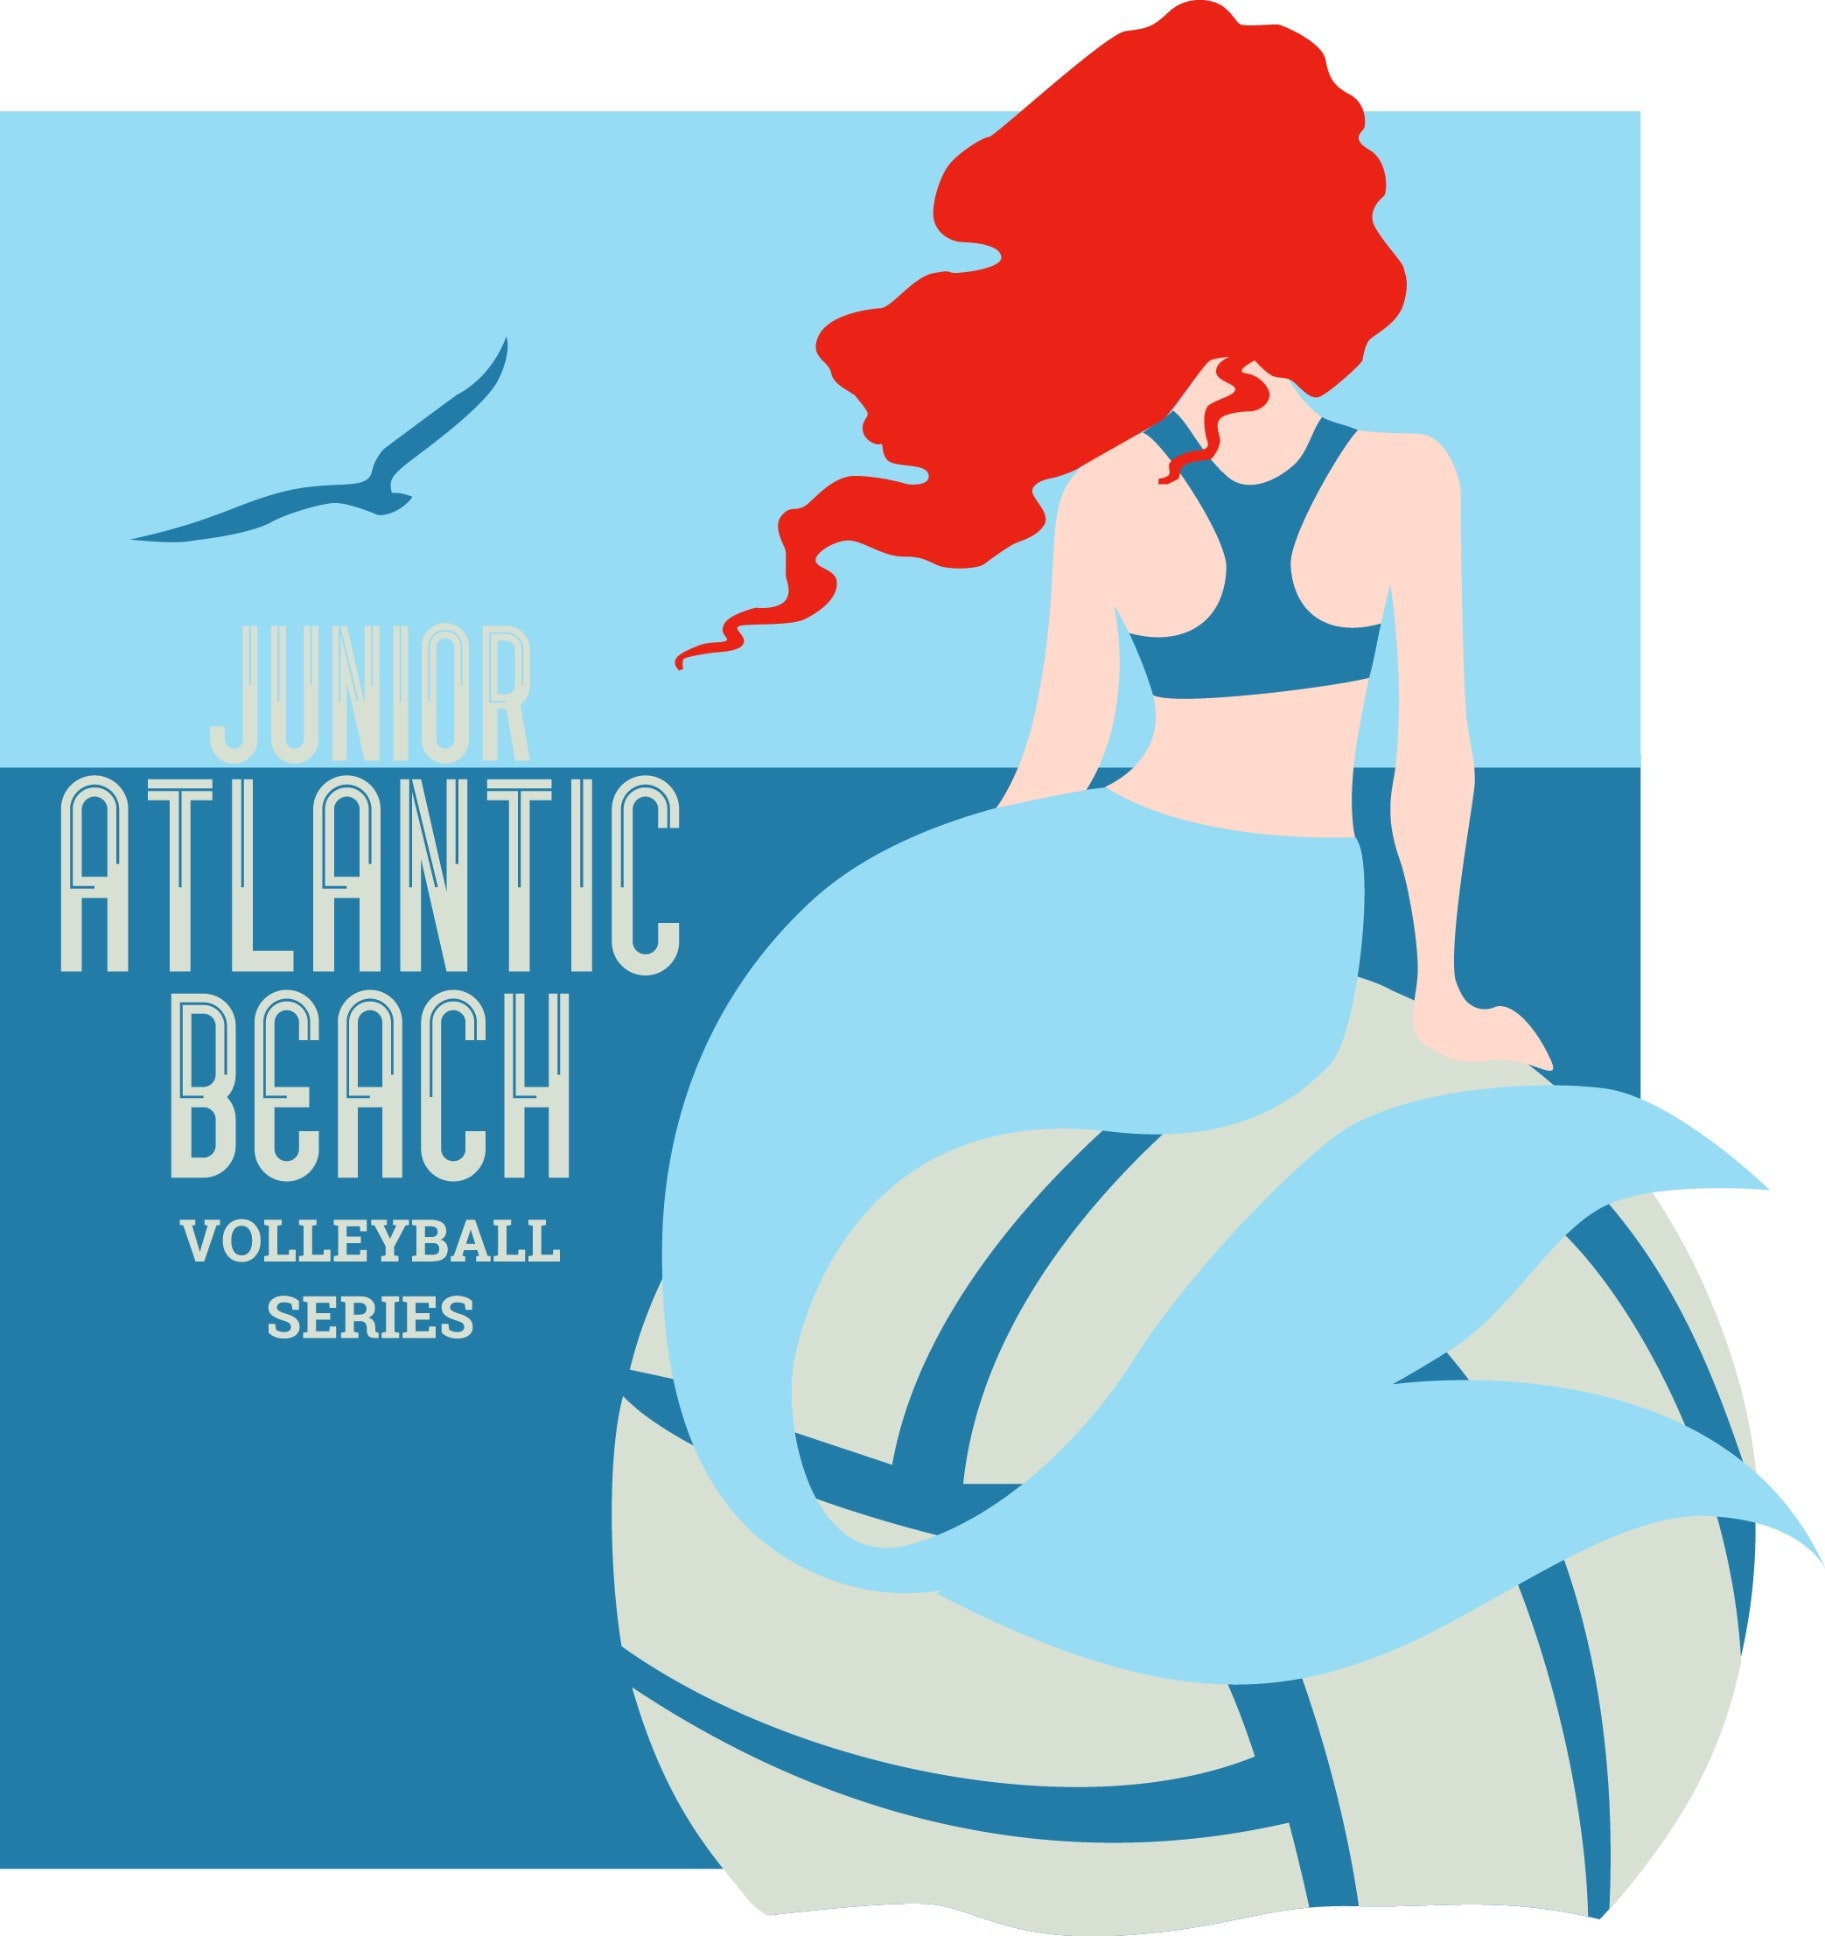 Junior Atlantic Beach Volleyball Club